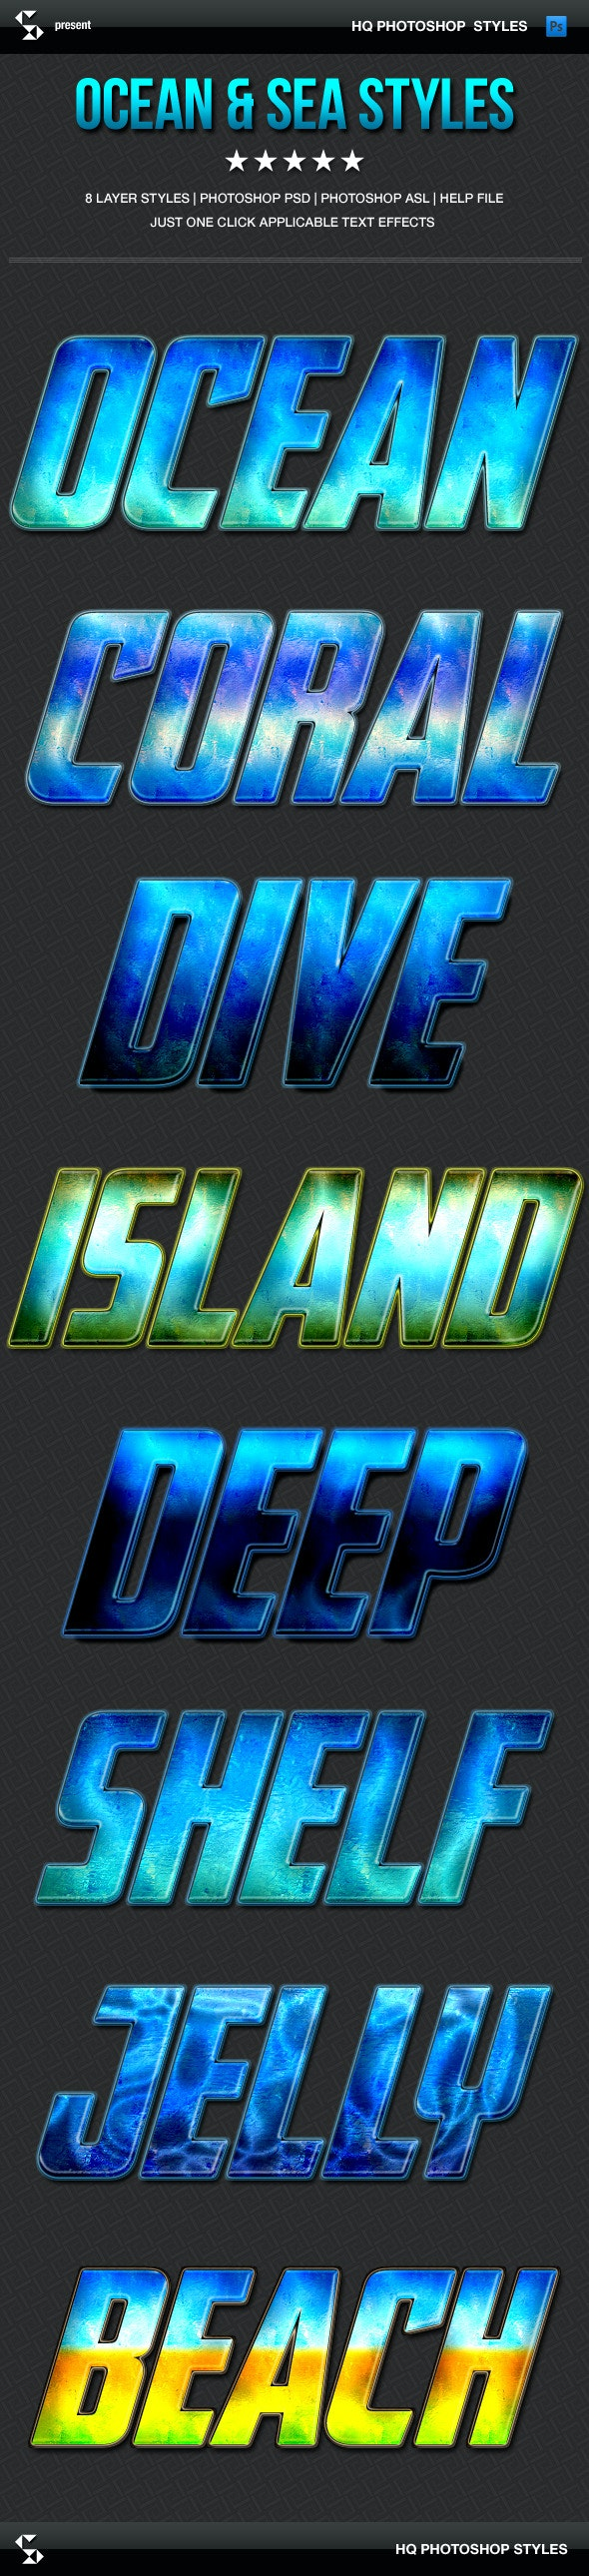 Hot Summer Styles - Ocean and Sea - Text Effects Styles